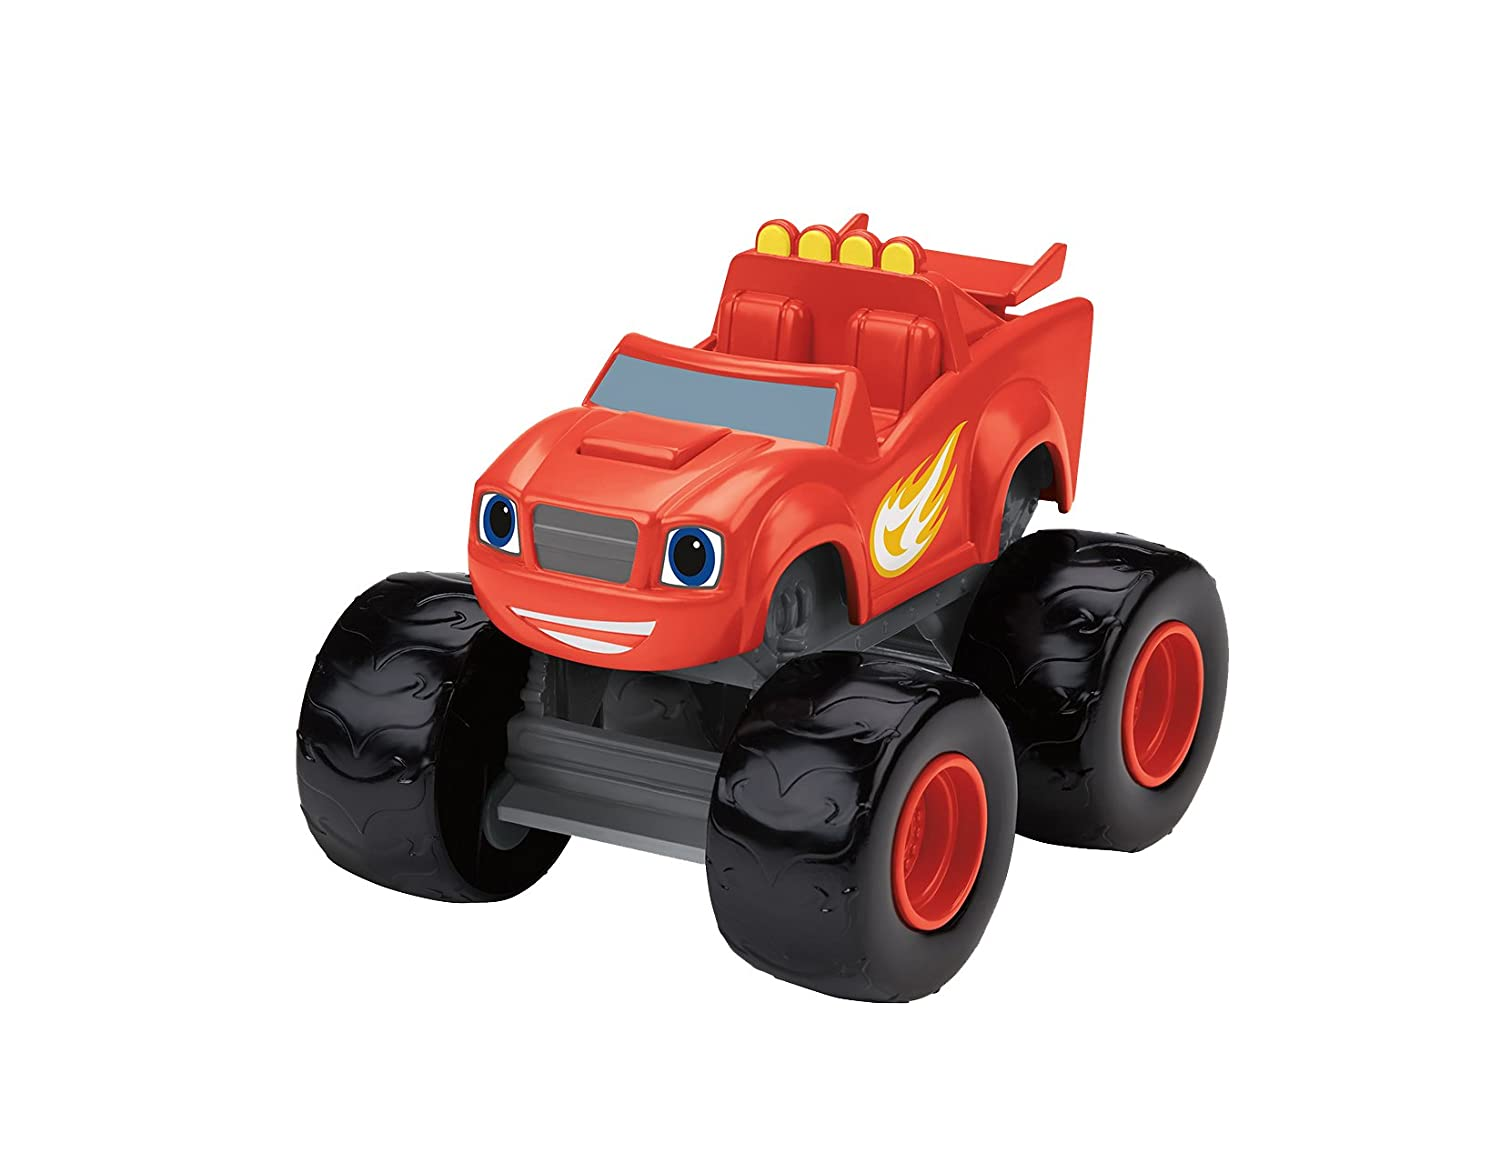 Blaze y los Monster Machines Fisher Price Blaze parlanchín Mattel DXB